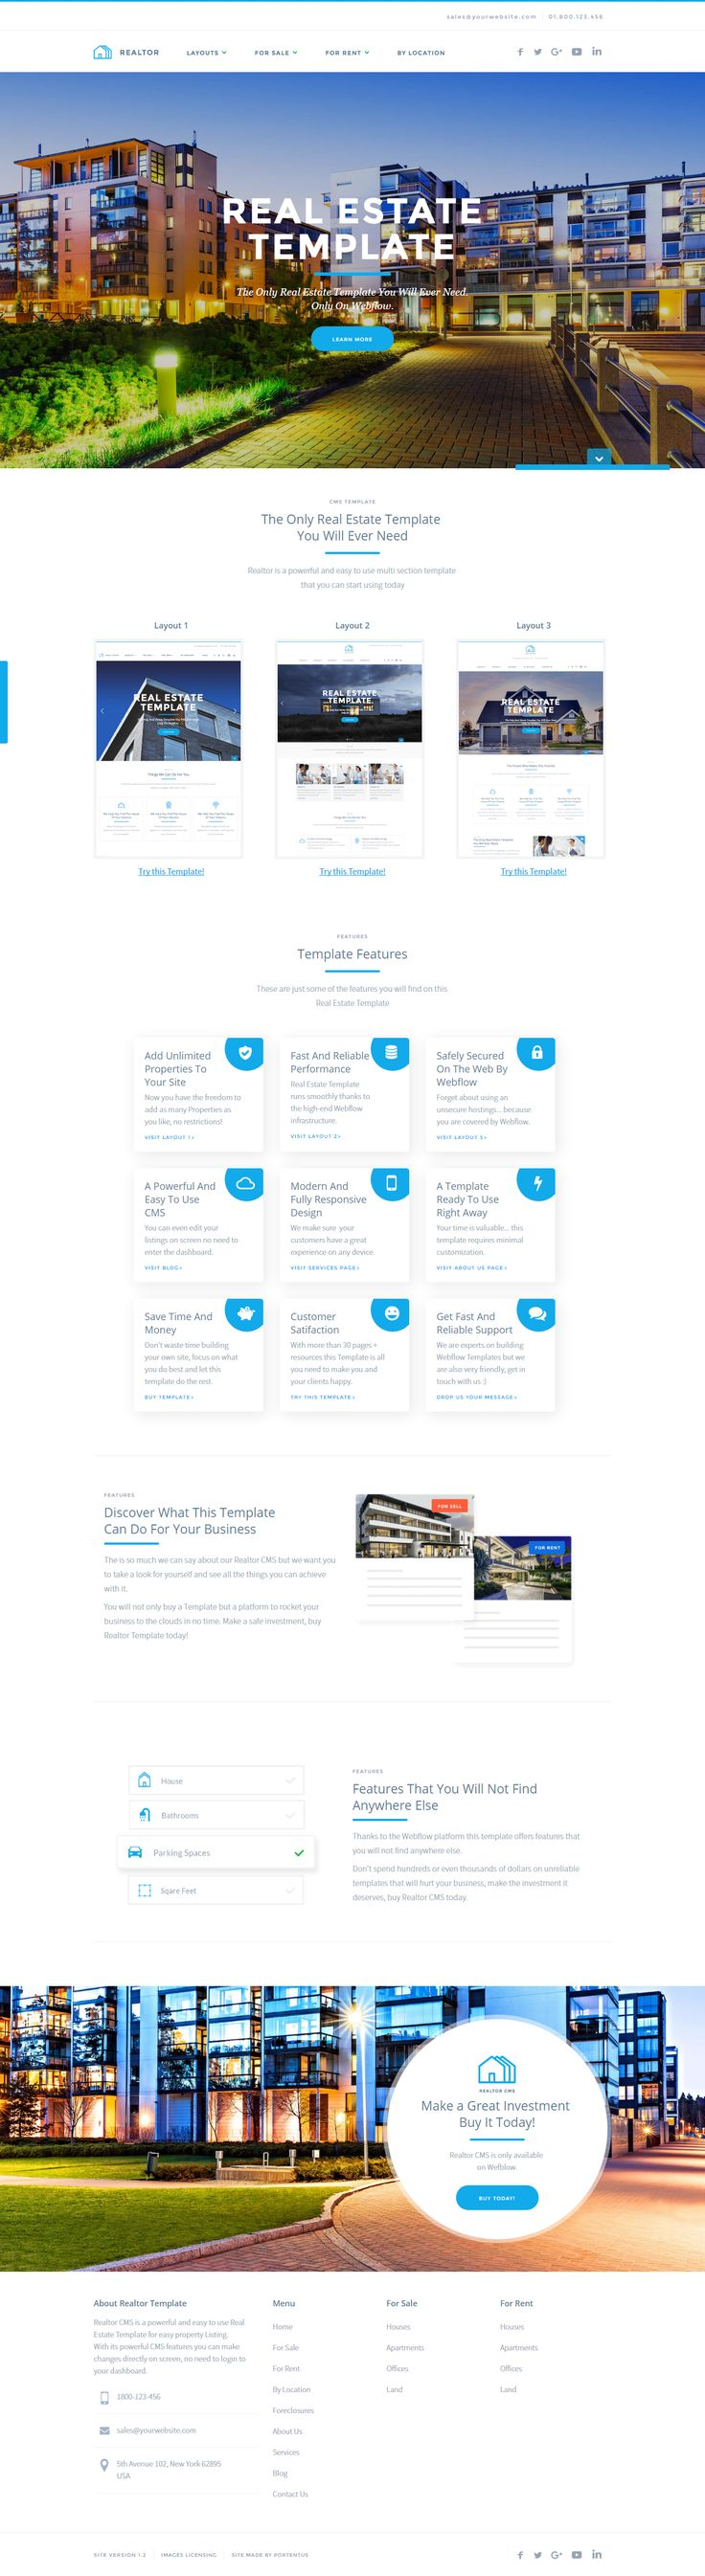 best ideas about real estate website templates great real estate agent or agency template an intuitive design your clients will the property of their dreams this template includes pages for